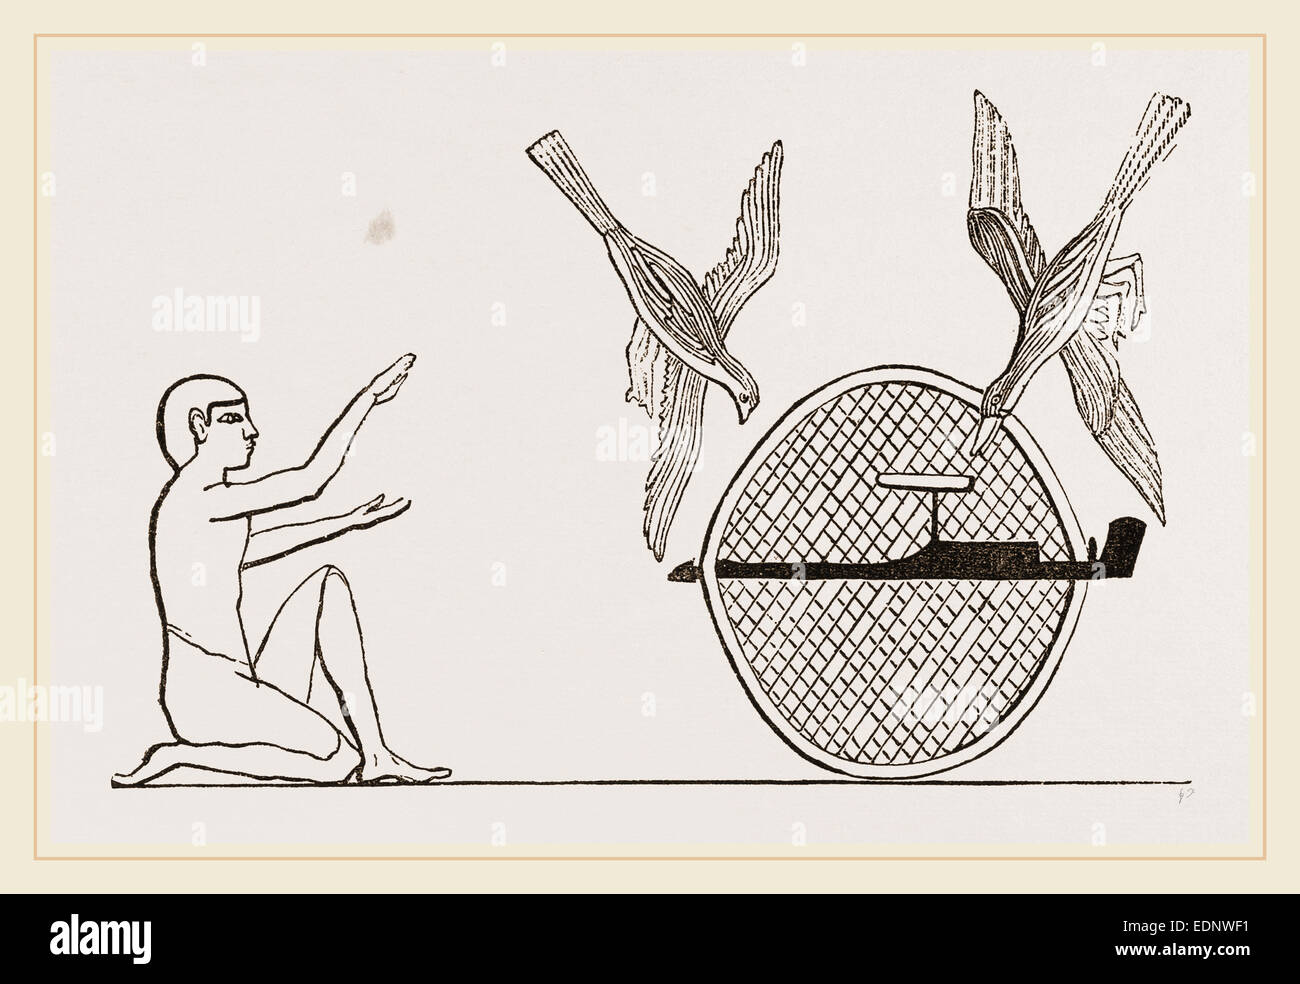 Clap-net of Ancient Egyptians for Bird-catching, Egypt - Stock Image